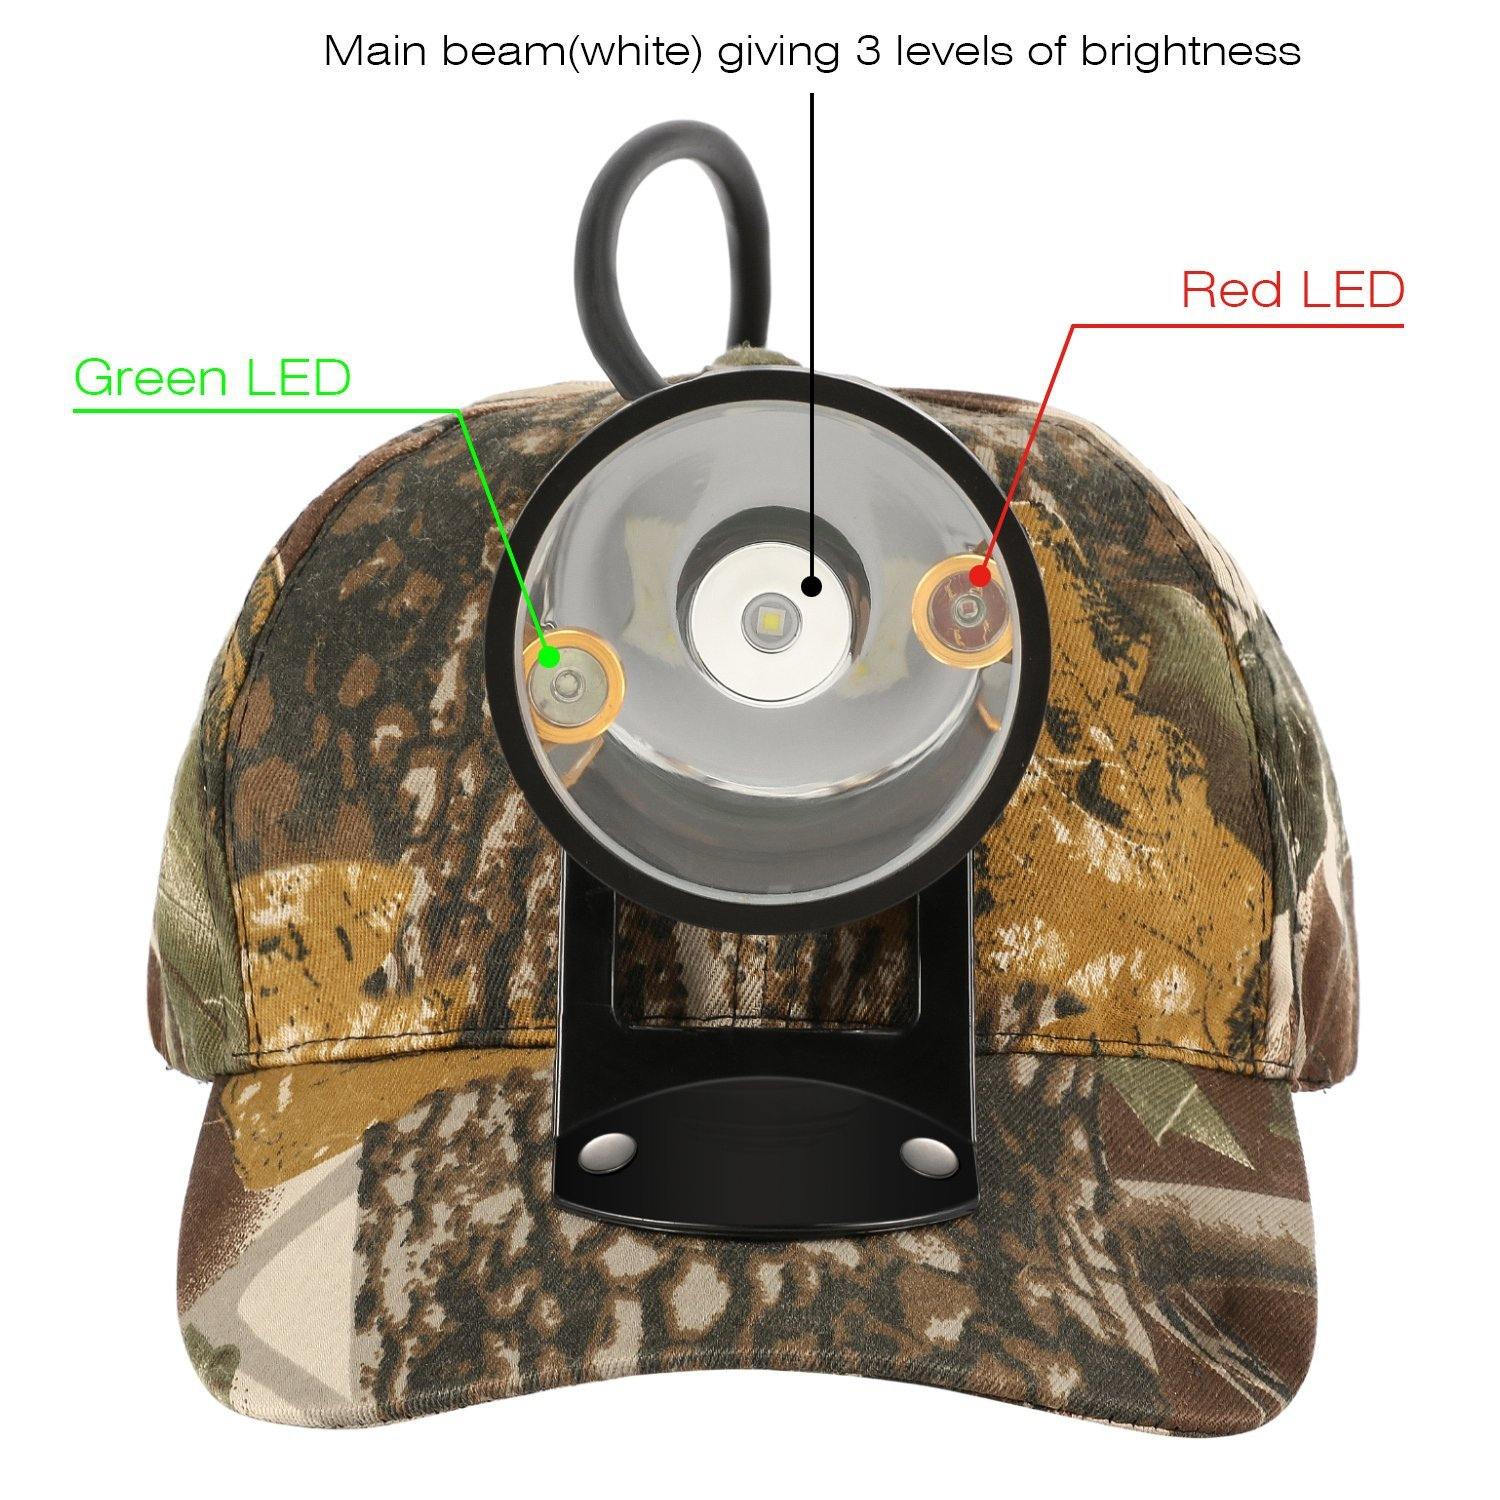 CREE 80000 LUX LED Coyote Hog Coon Hunting Light, Rechargeable Predator Hunting, 3 LED Cap Light, 5 Position Switch